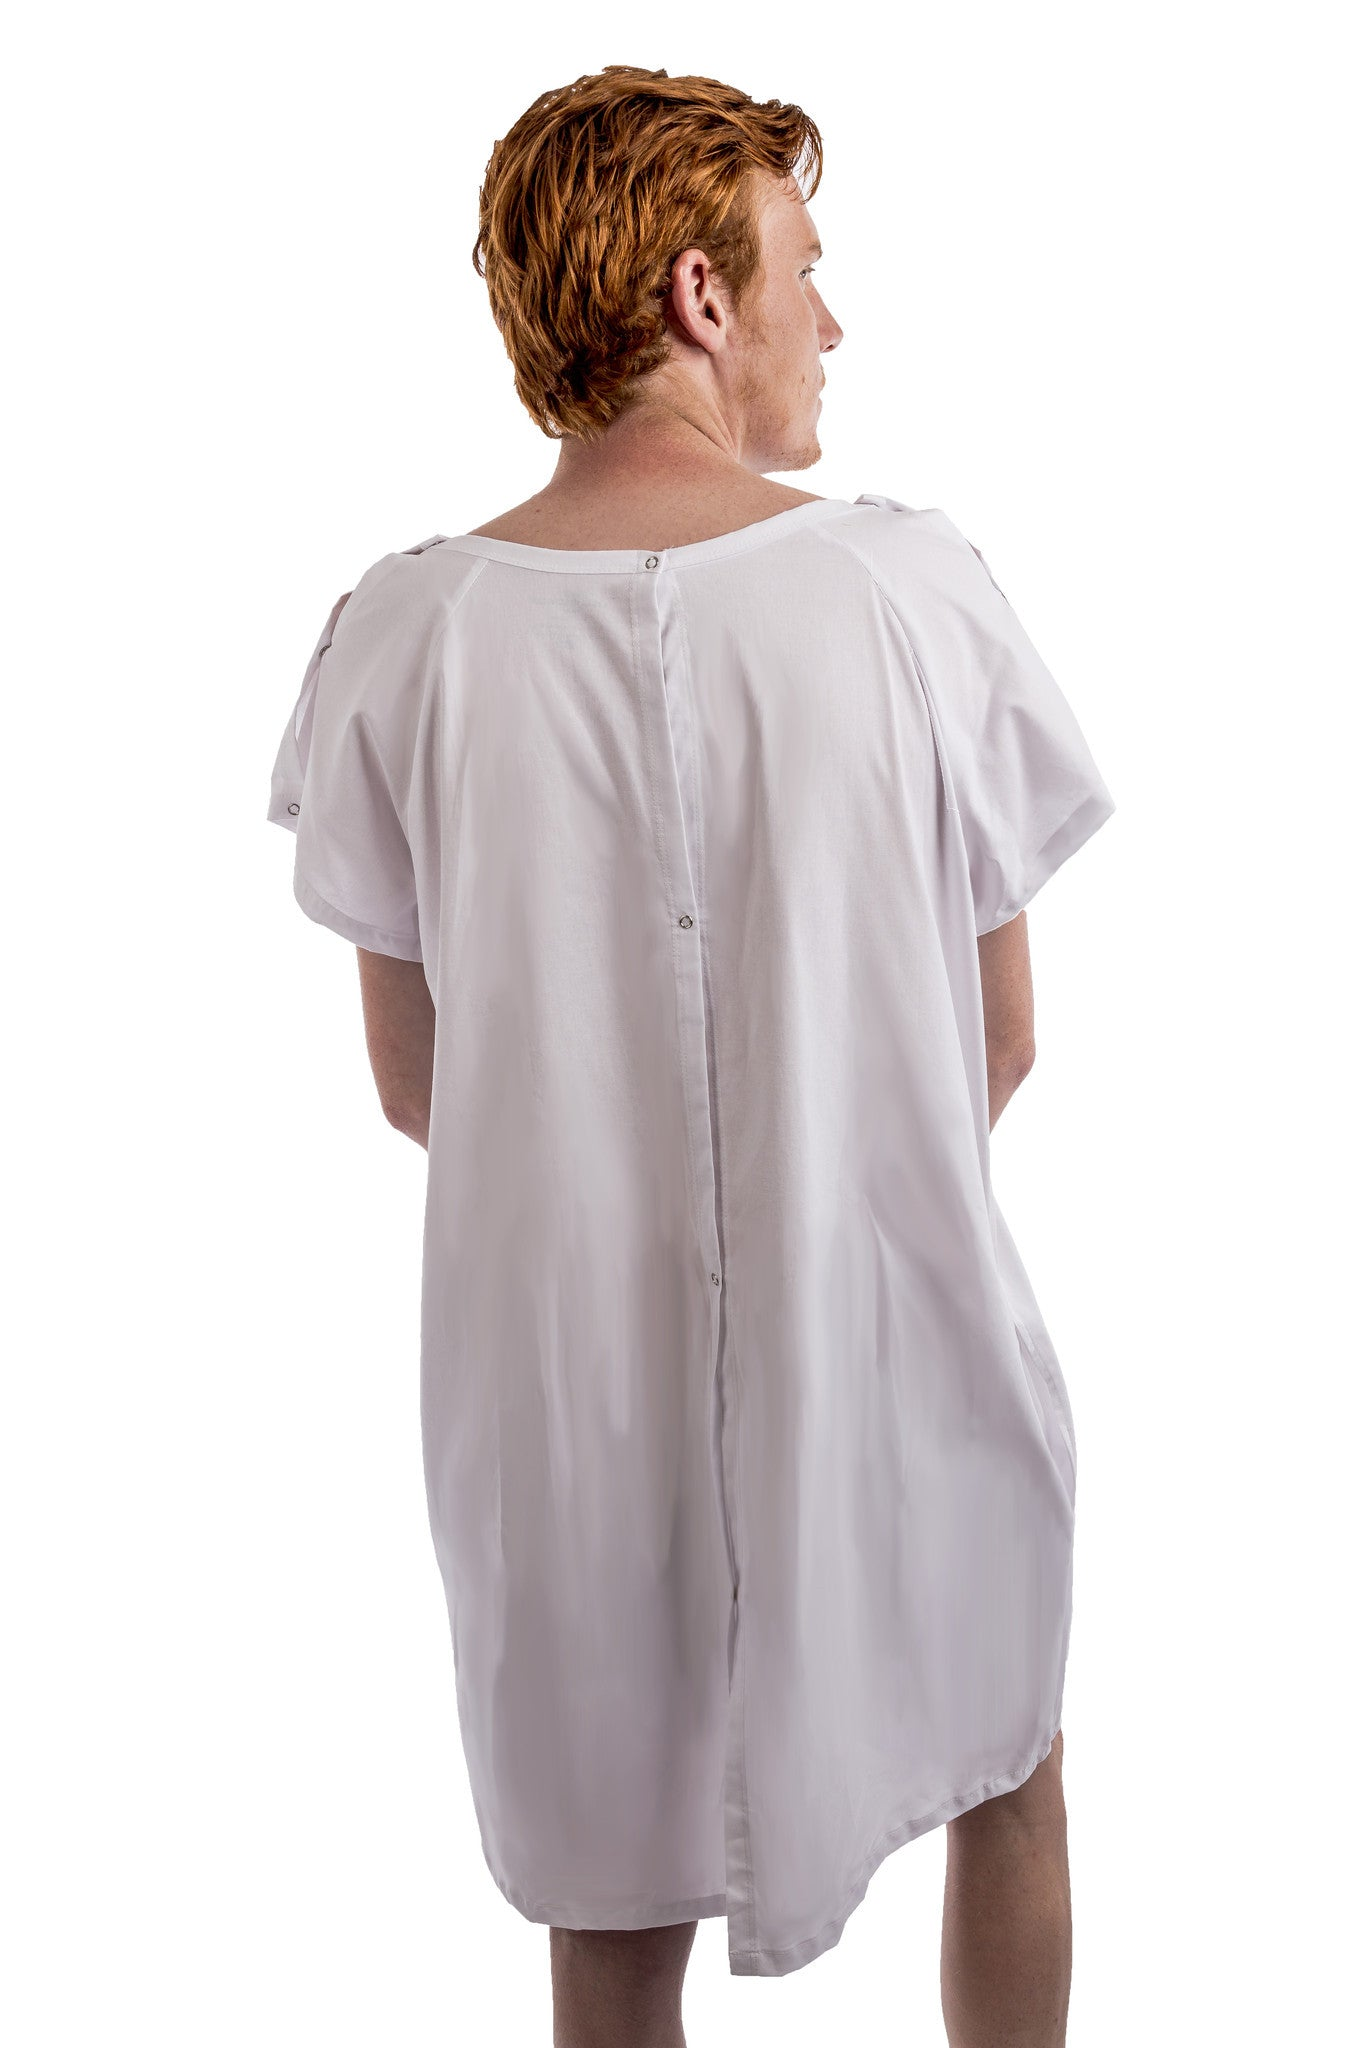 cool hospital gown for men white